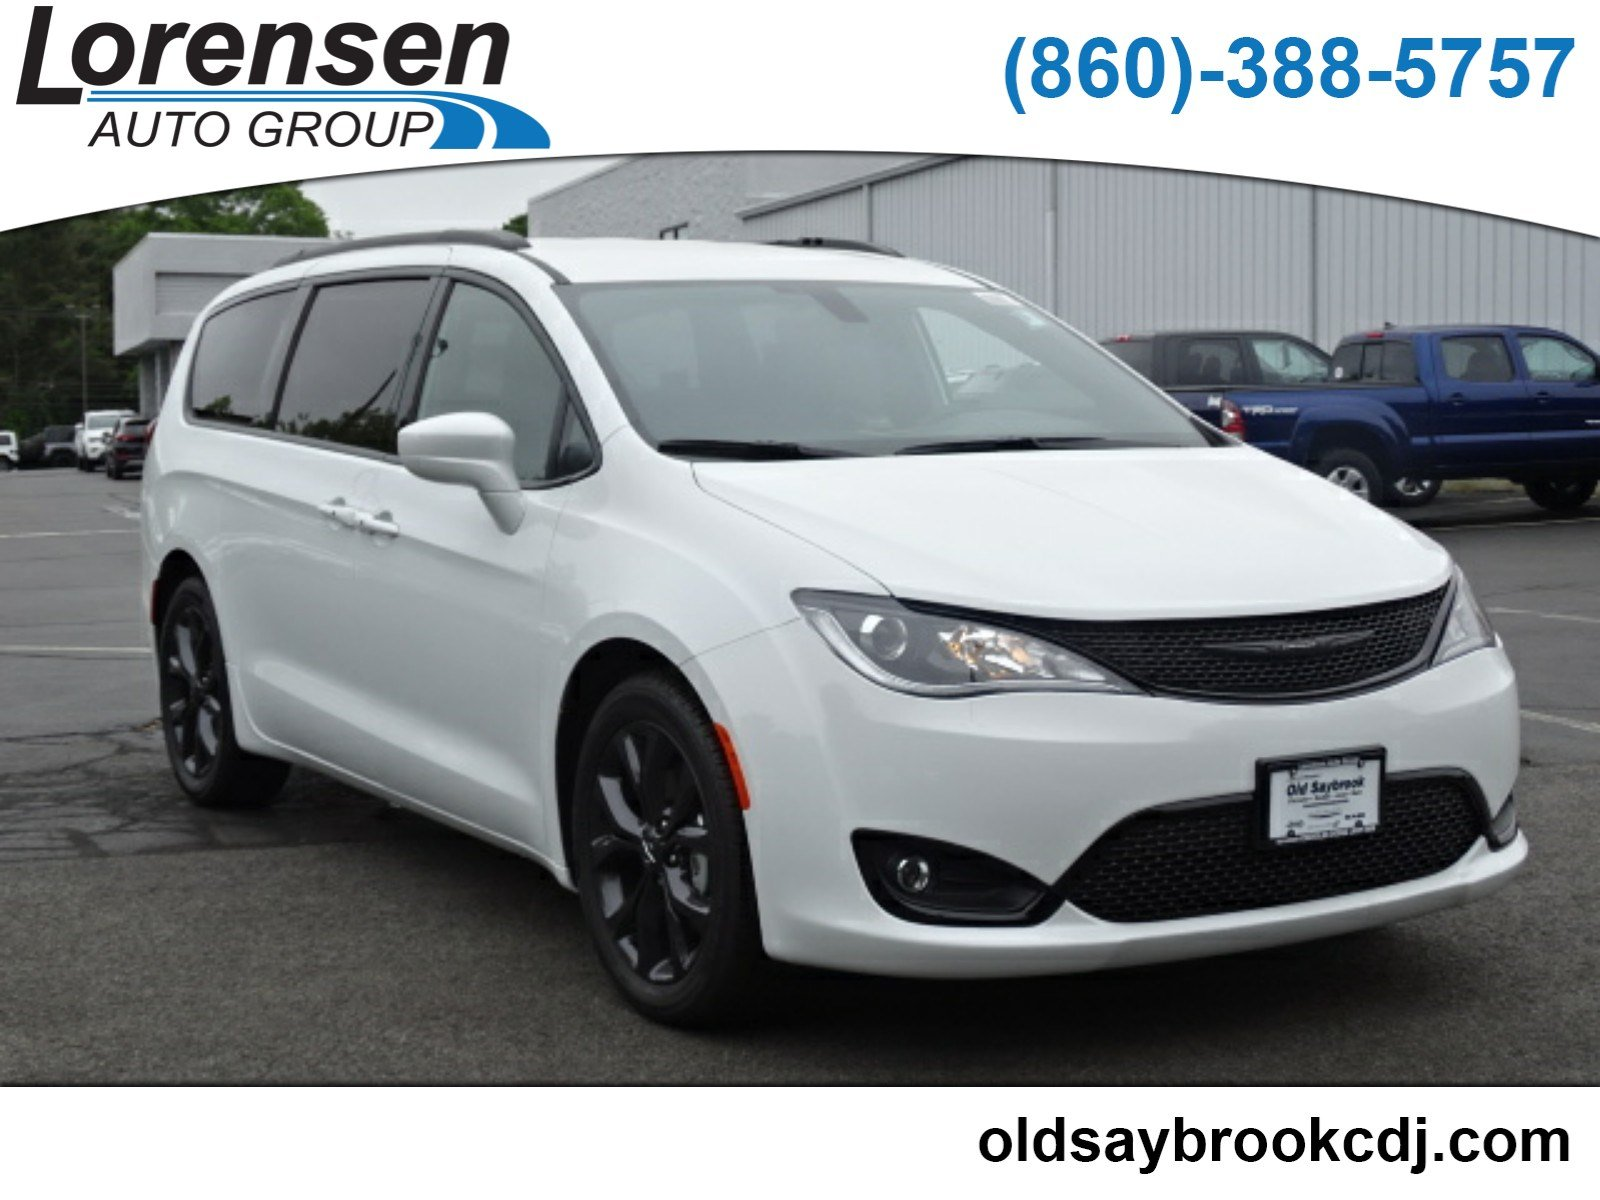 New 2018 Chrysler Pacifica Touring L Penger Van In Old Saybrook 18190 Dodge Jeep Ram